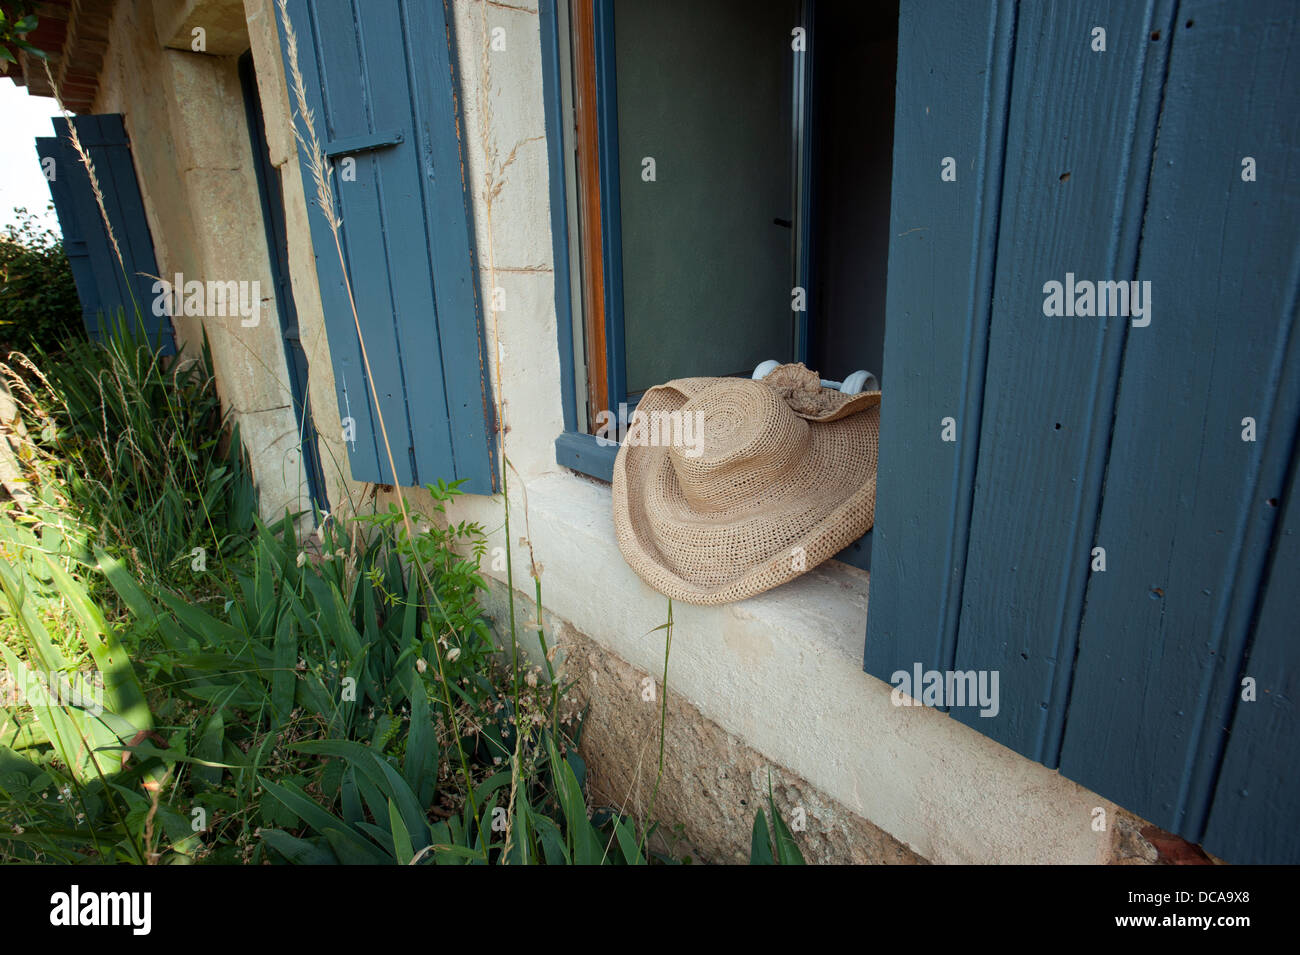 Hat in window at Fajac-La-Selve at Pech-Luna in Languedoc-Roussillon, Southwest France. July 2013 - Stock Image